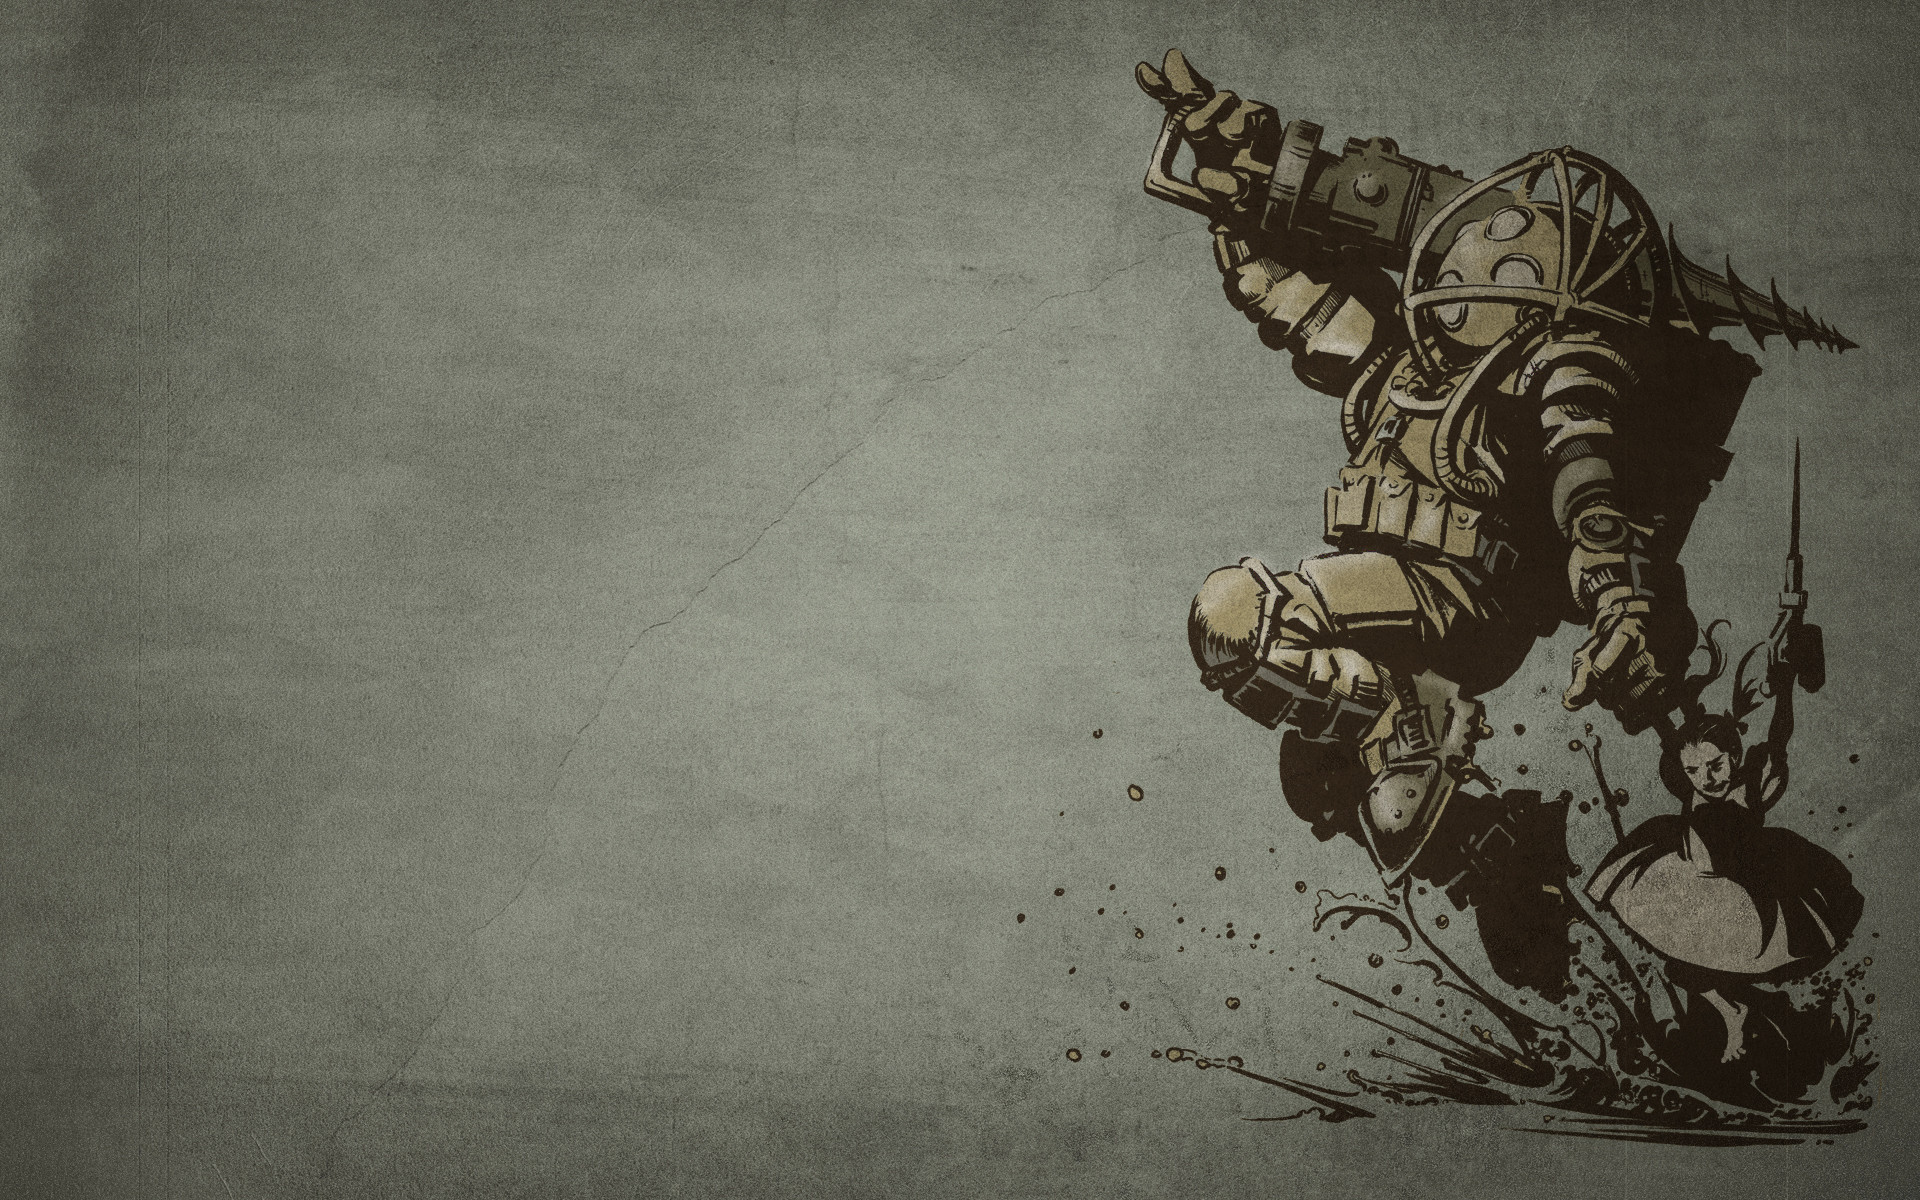 1920x1200 Bioshock Wallpaper